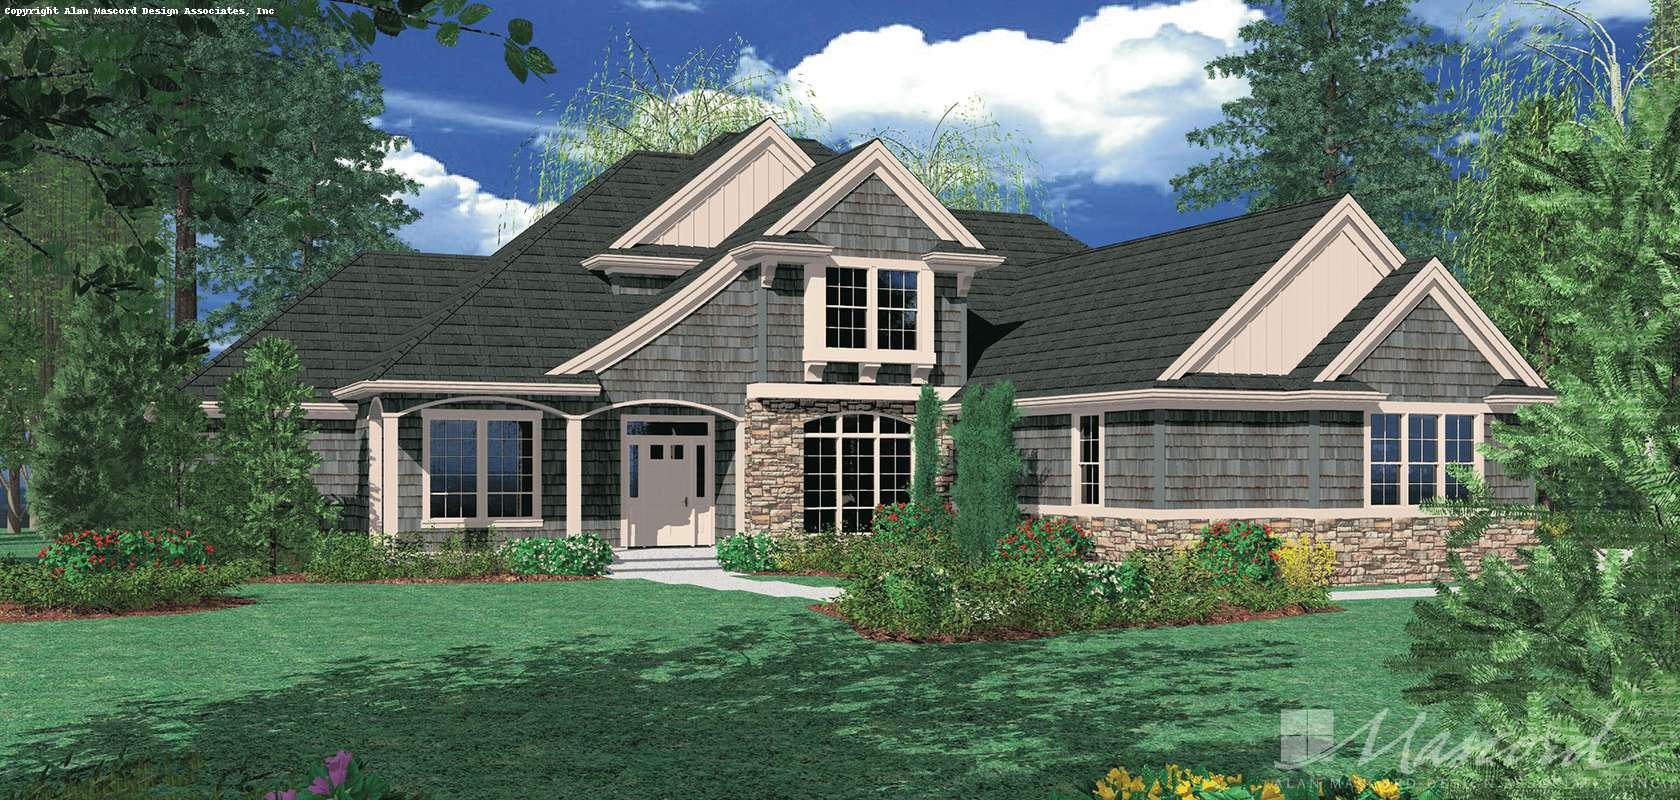 Mascord House Plan 22108: The Sumner